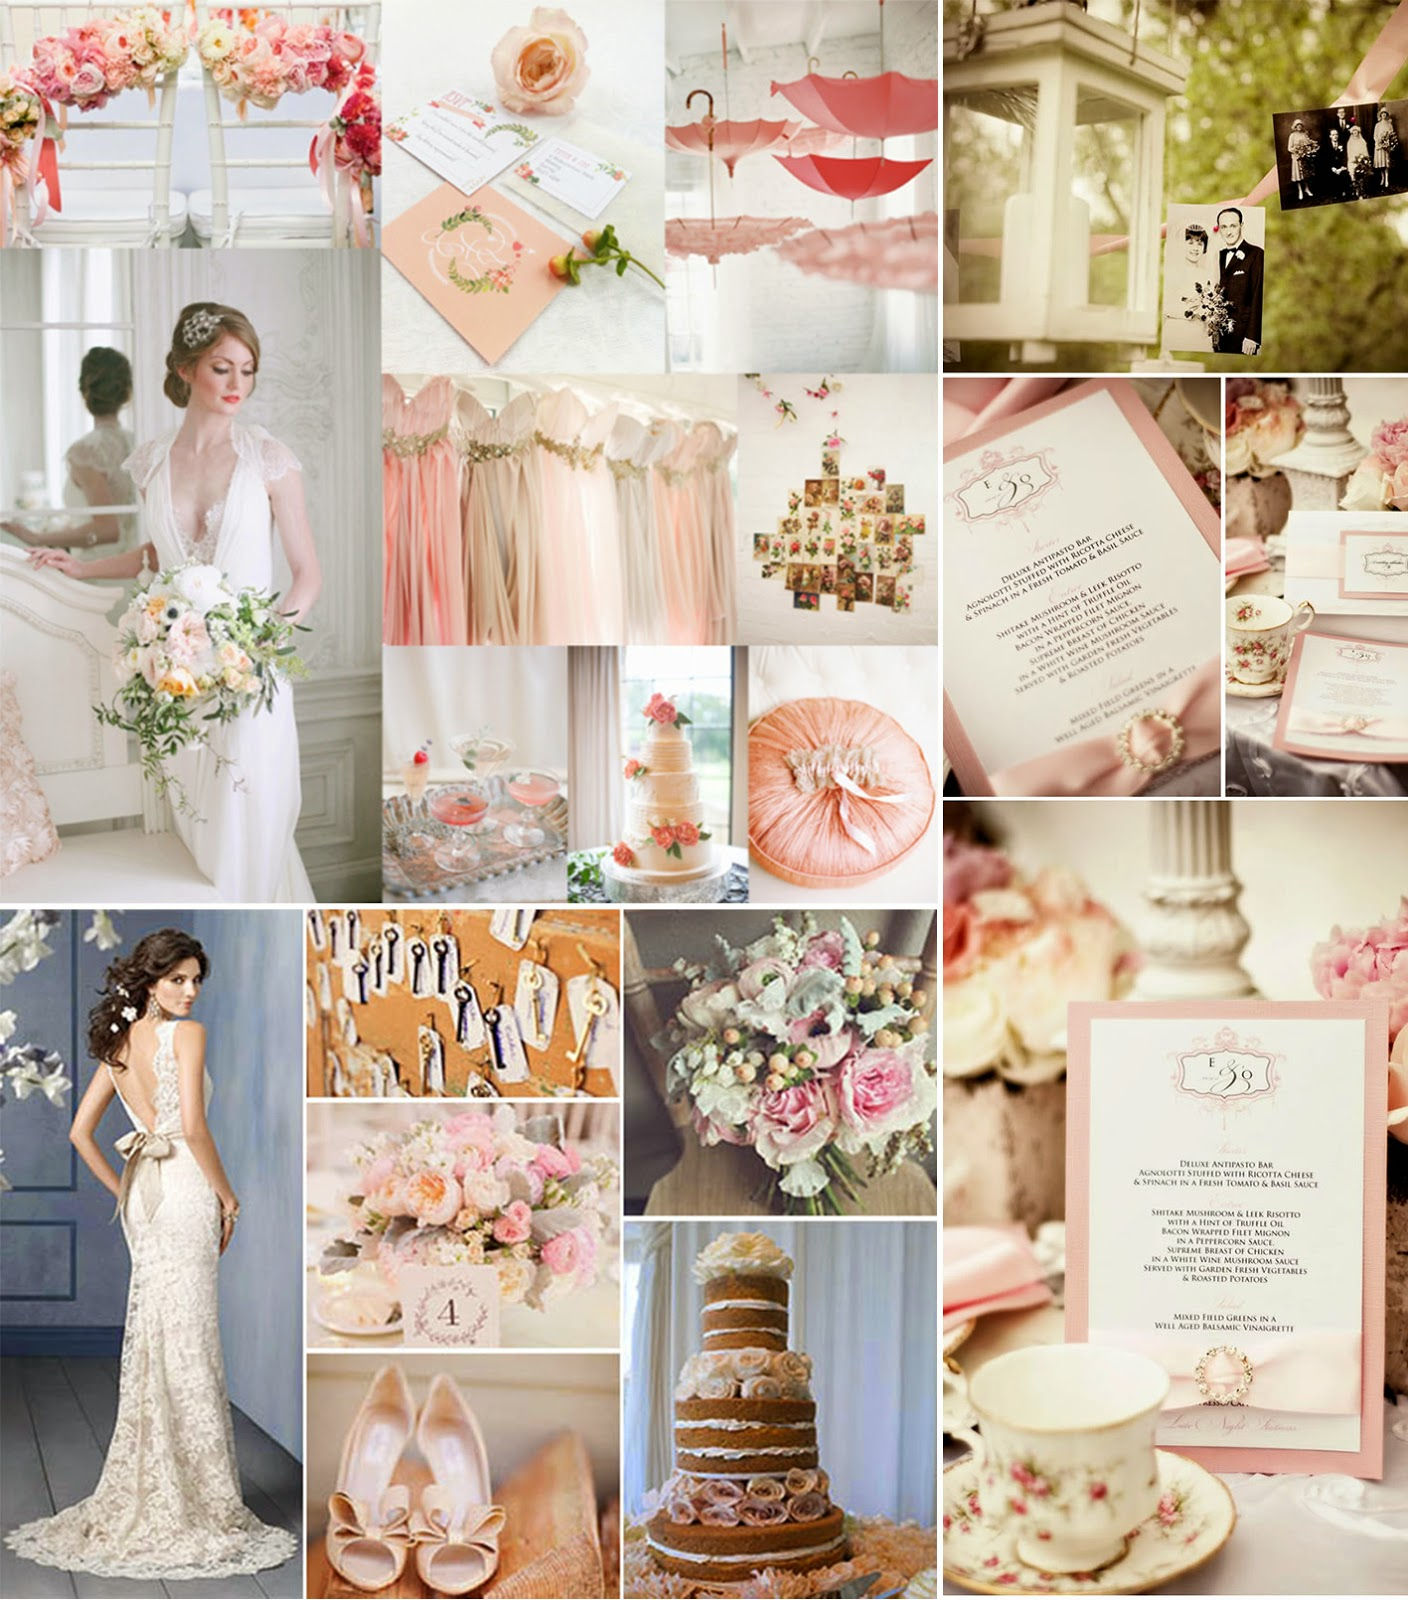 Top 1 Shabby Chic Pink And White Wedding